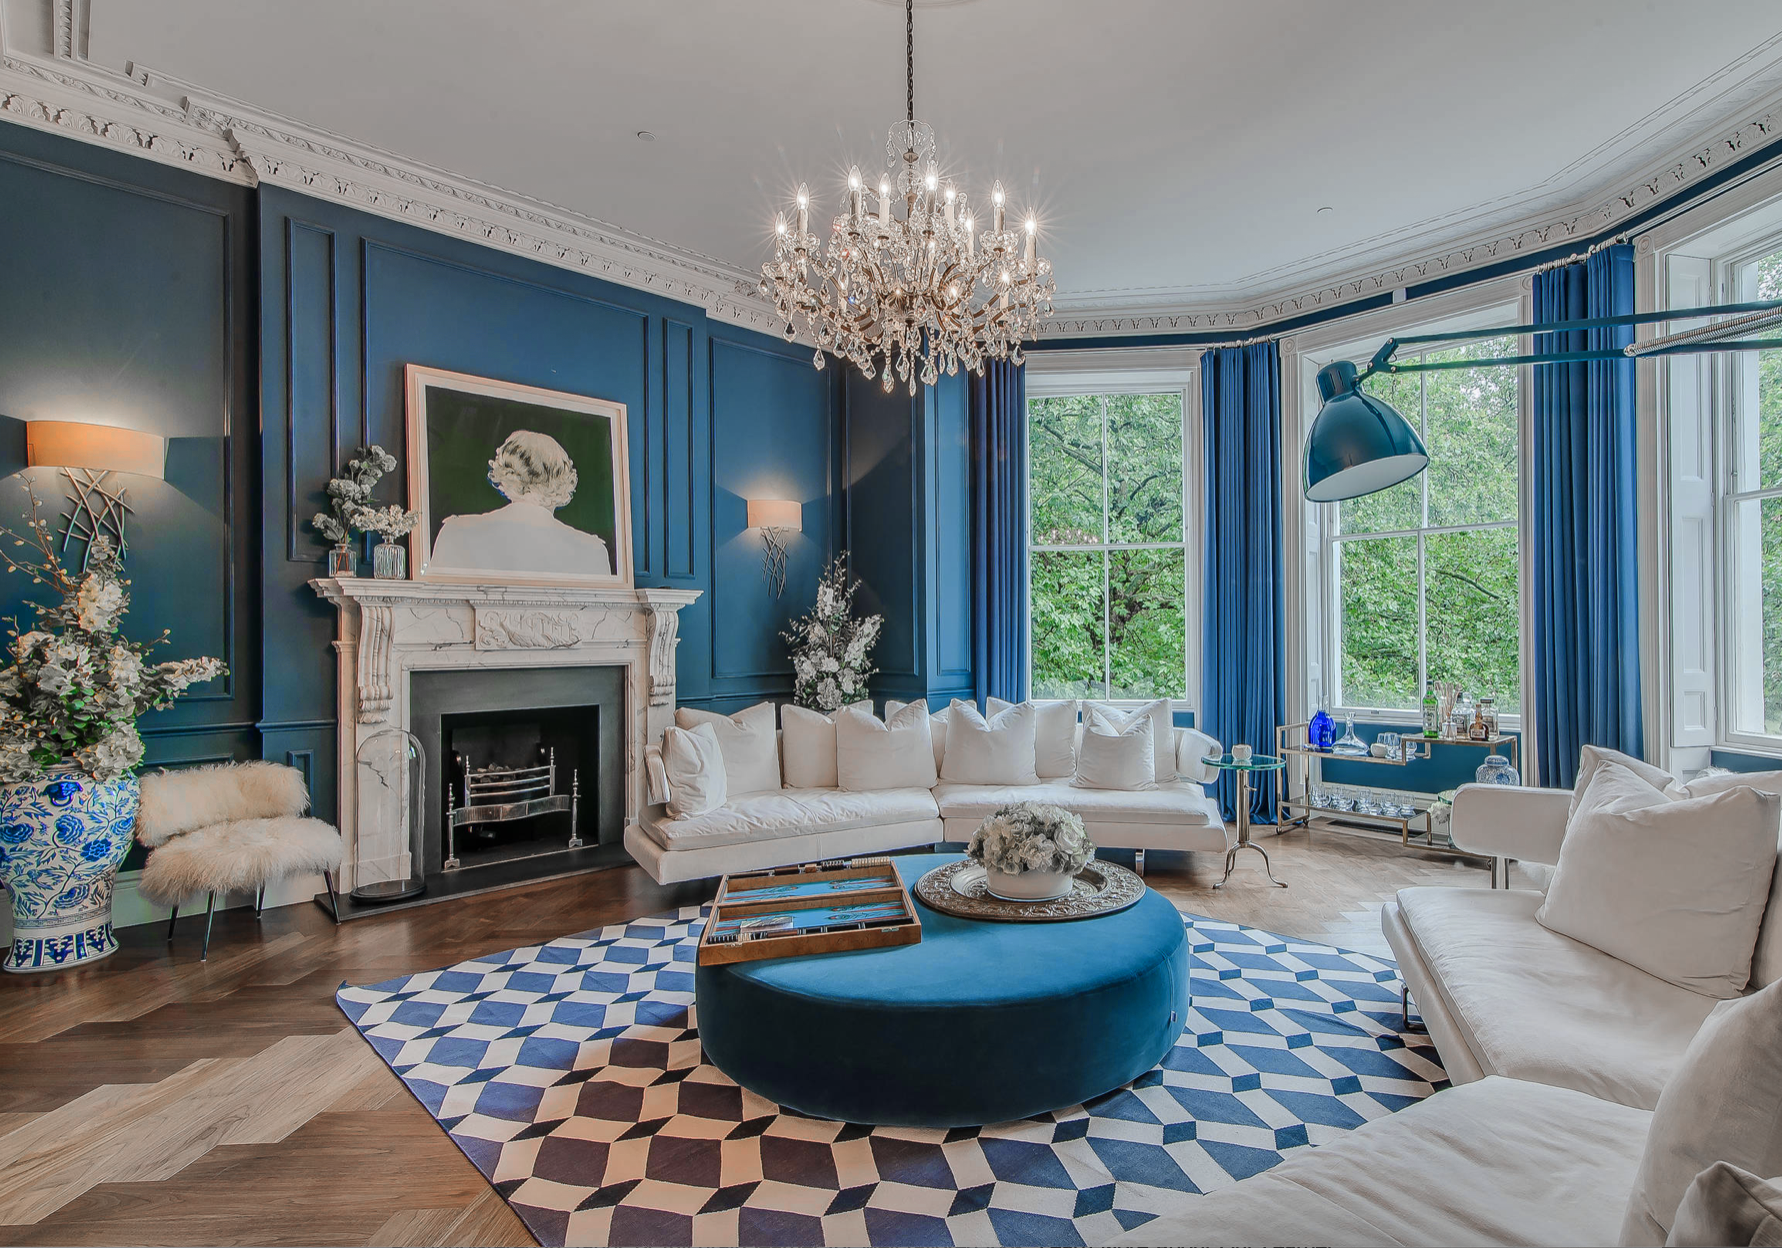 Victorian Style Blue And White Living Room Decor With White Deep Sofa And Crystal C Blue And White Living Room Luxury House Interior Design Living Room Designs